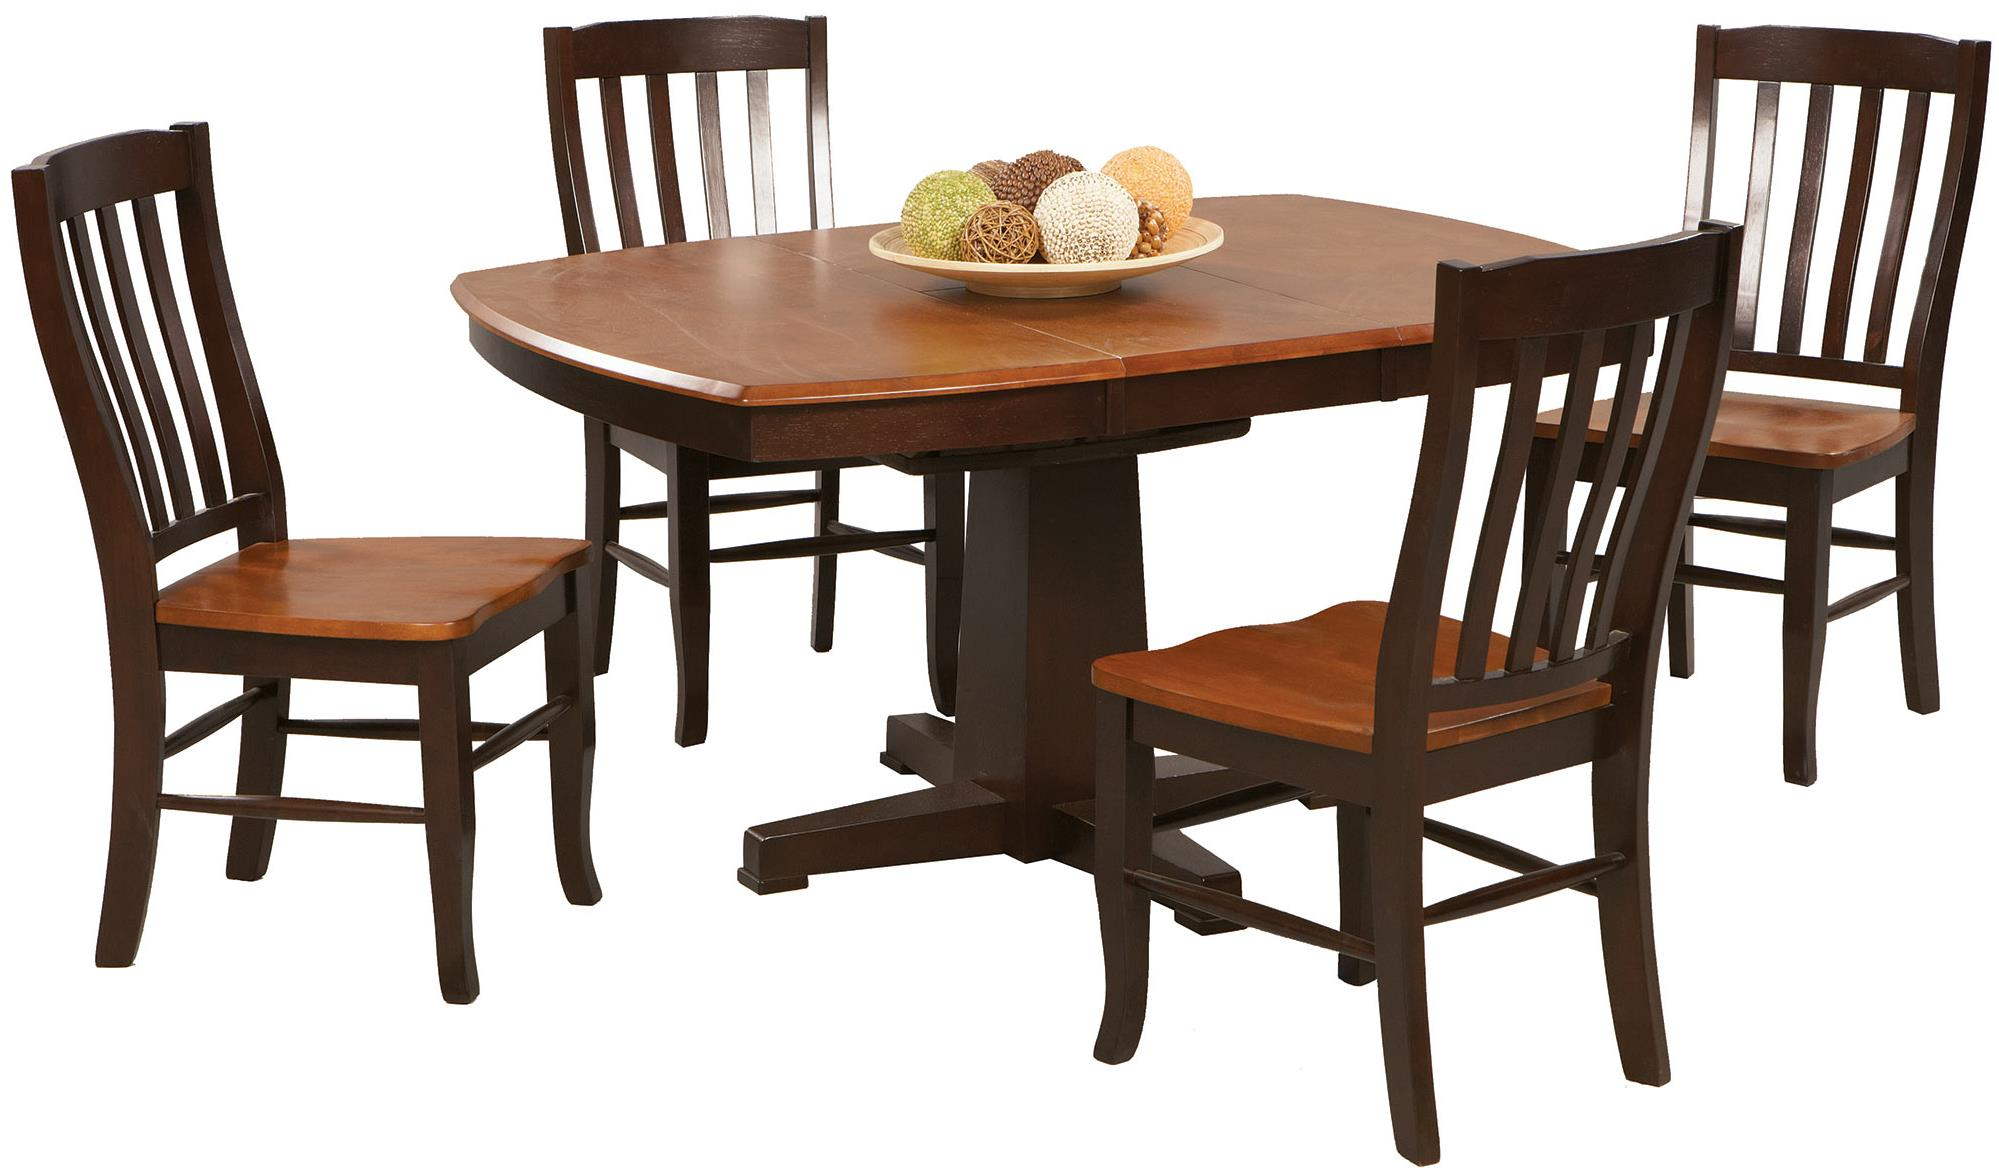 winners only santa fe chestnut espresso 5 piece dining set with winners only santa fe chestnut espresso 5 piece dining set item number